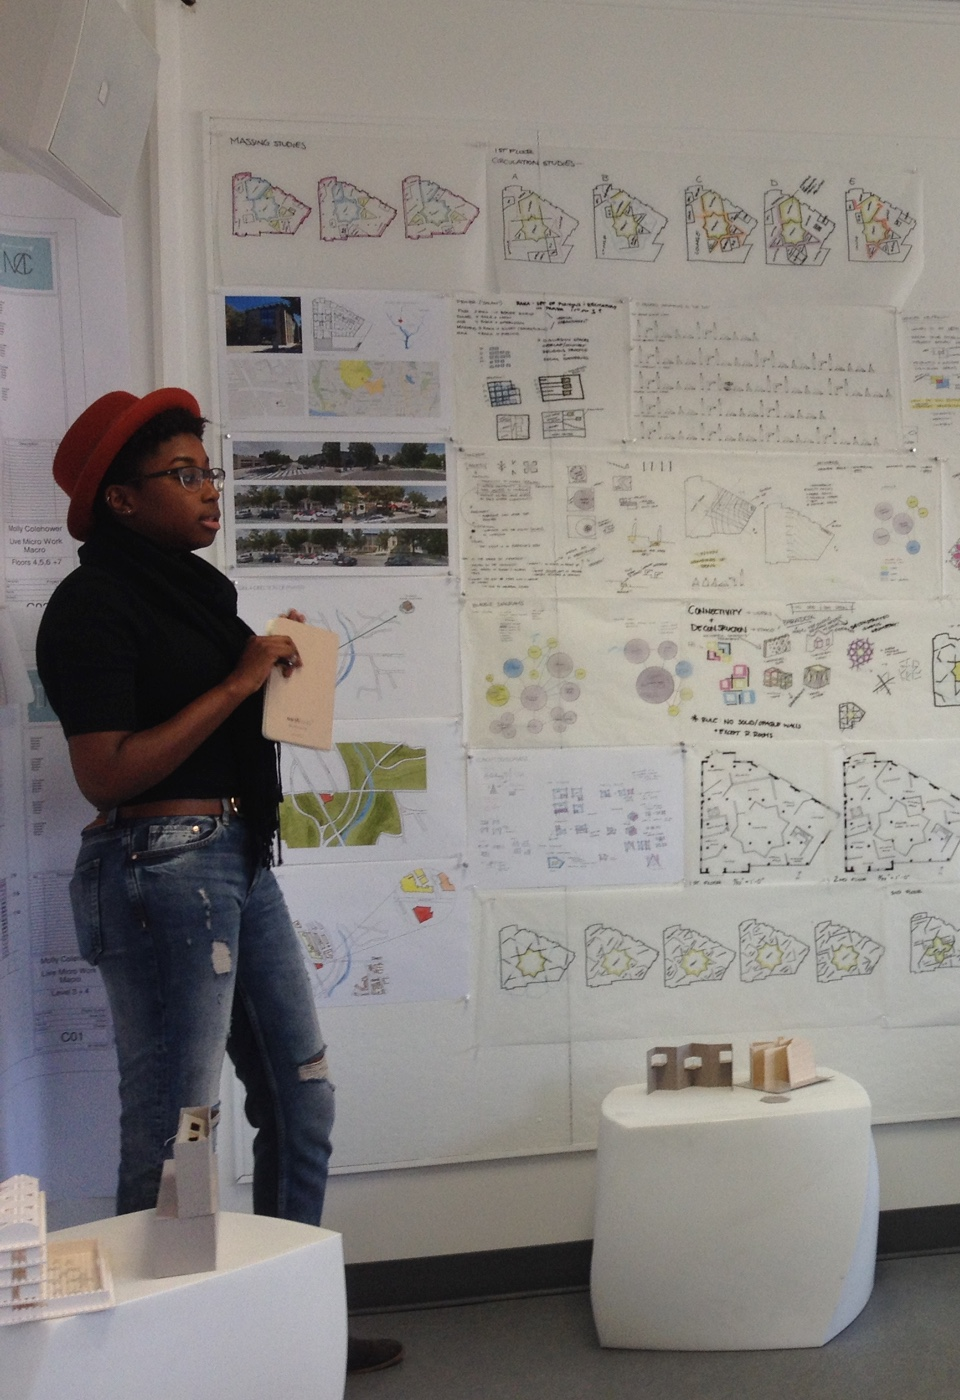 Female student standing with architectural drawings